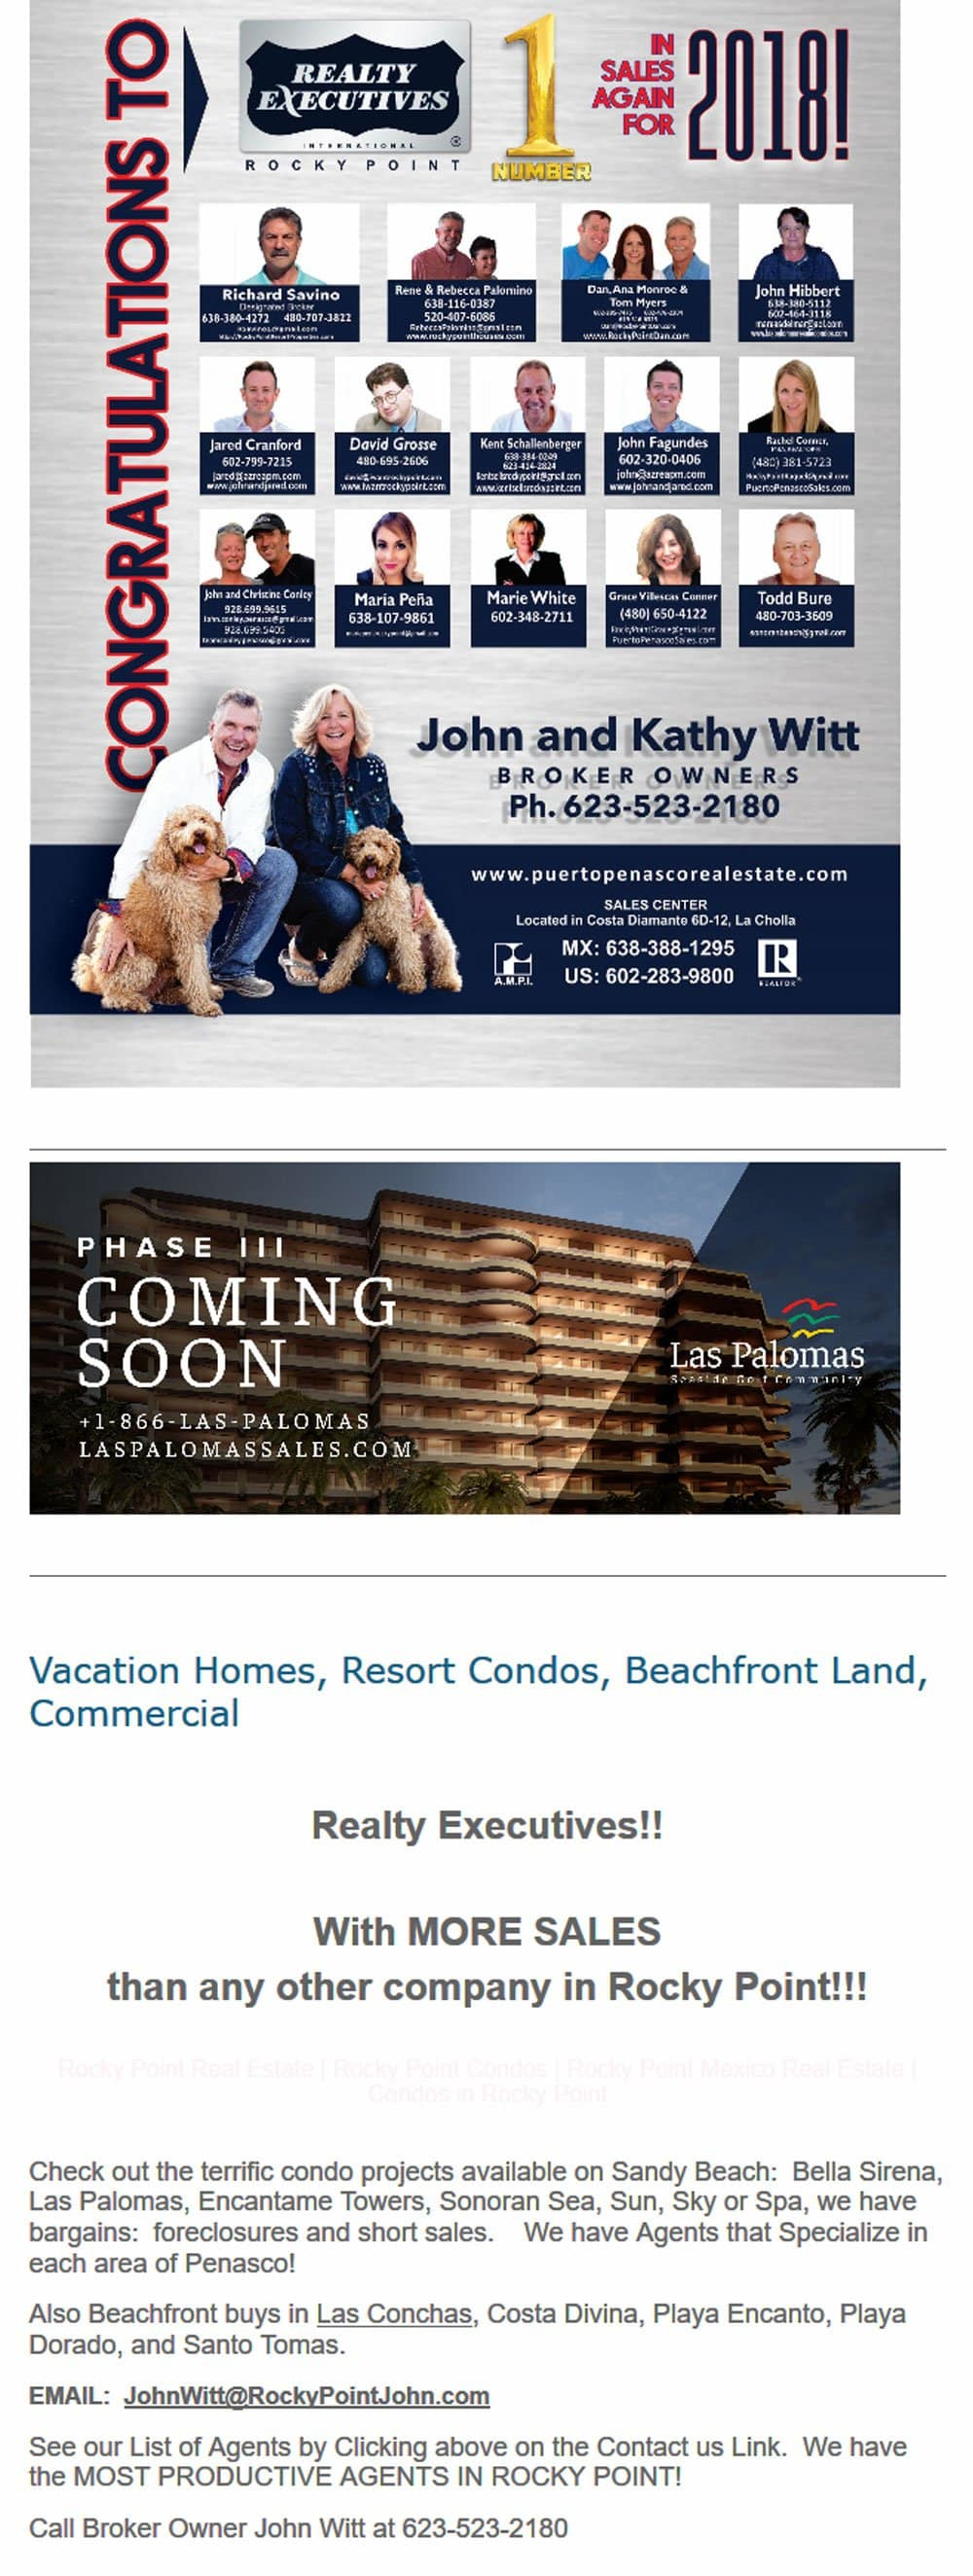 Realty Executives Real Estate in Puerto Penasco (Rocky Point Mexico). Click here to visit the Realty Executives website.